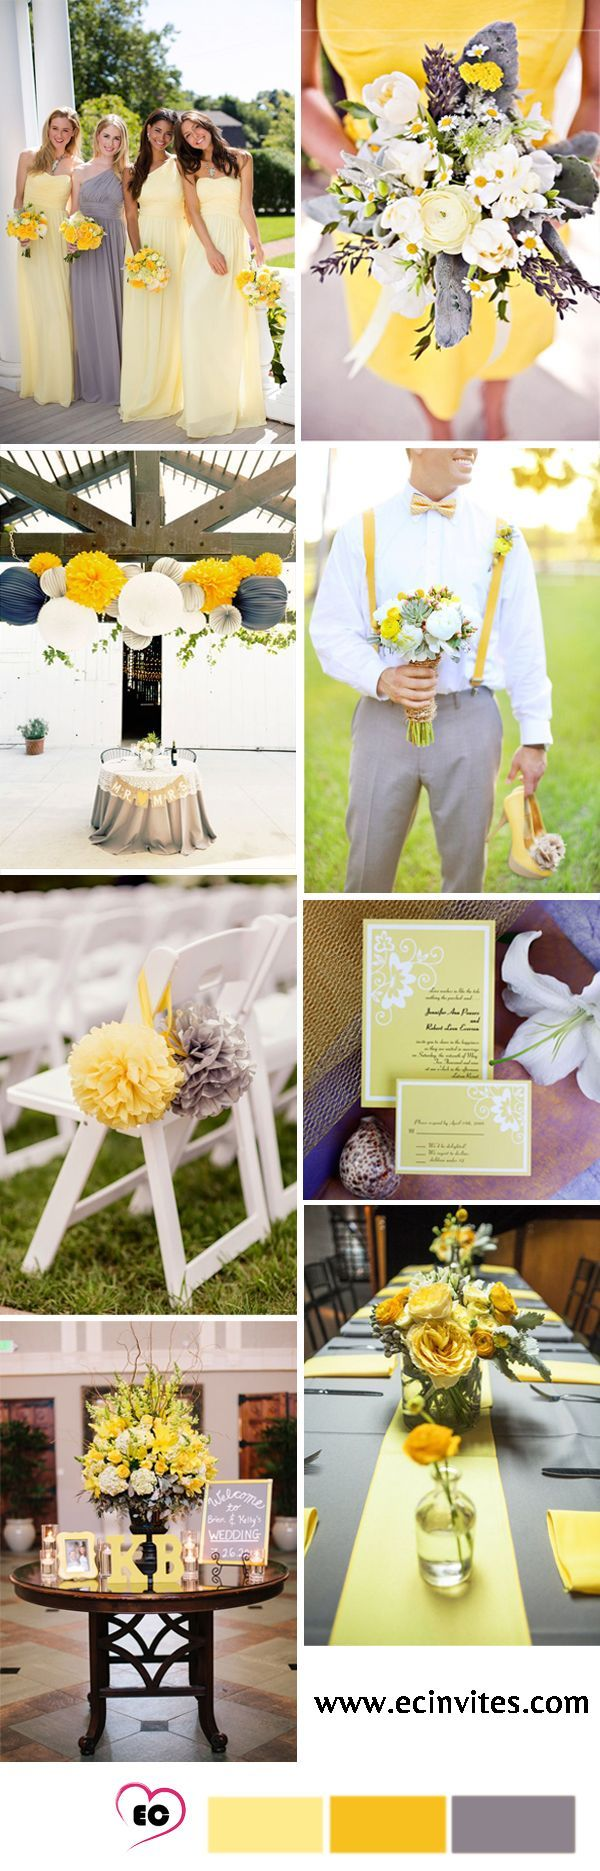 Bright yellow and grey wedding idea